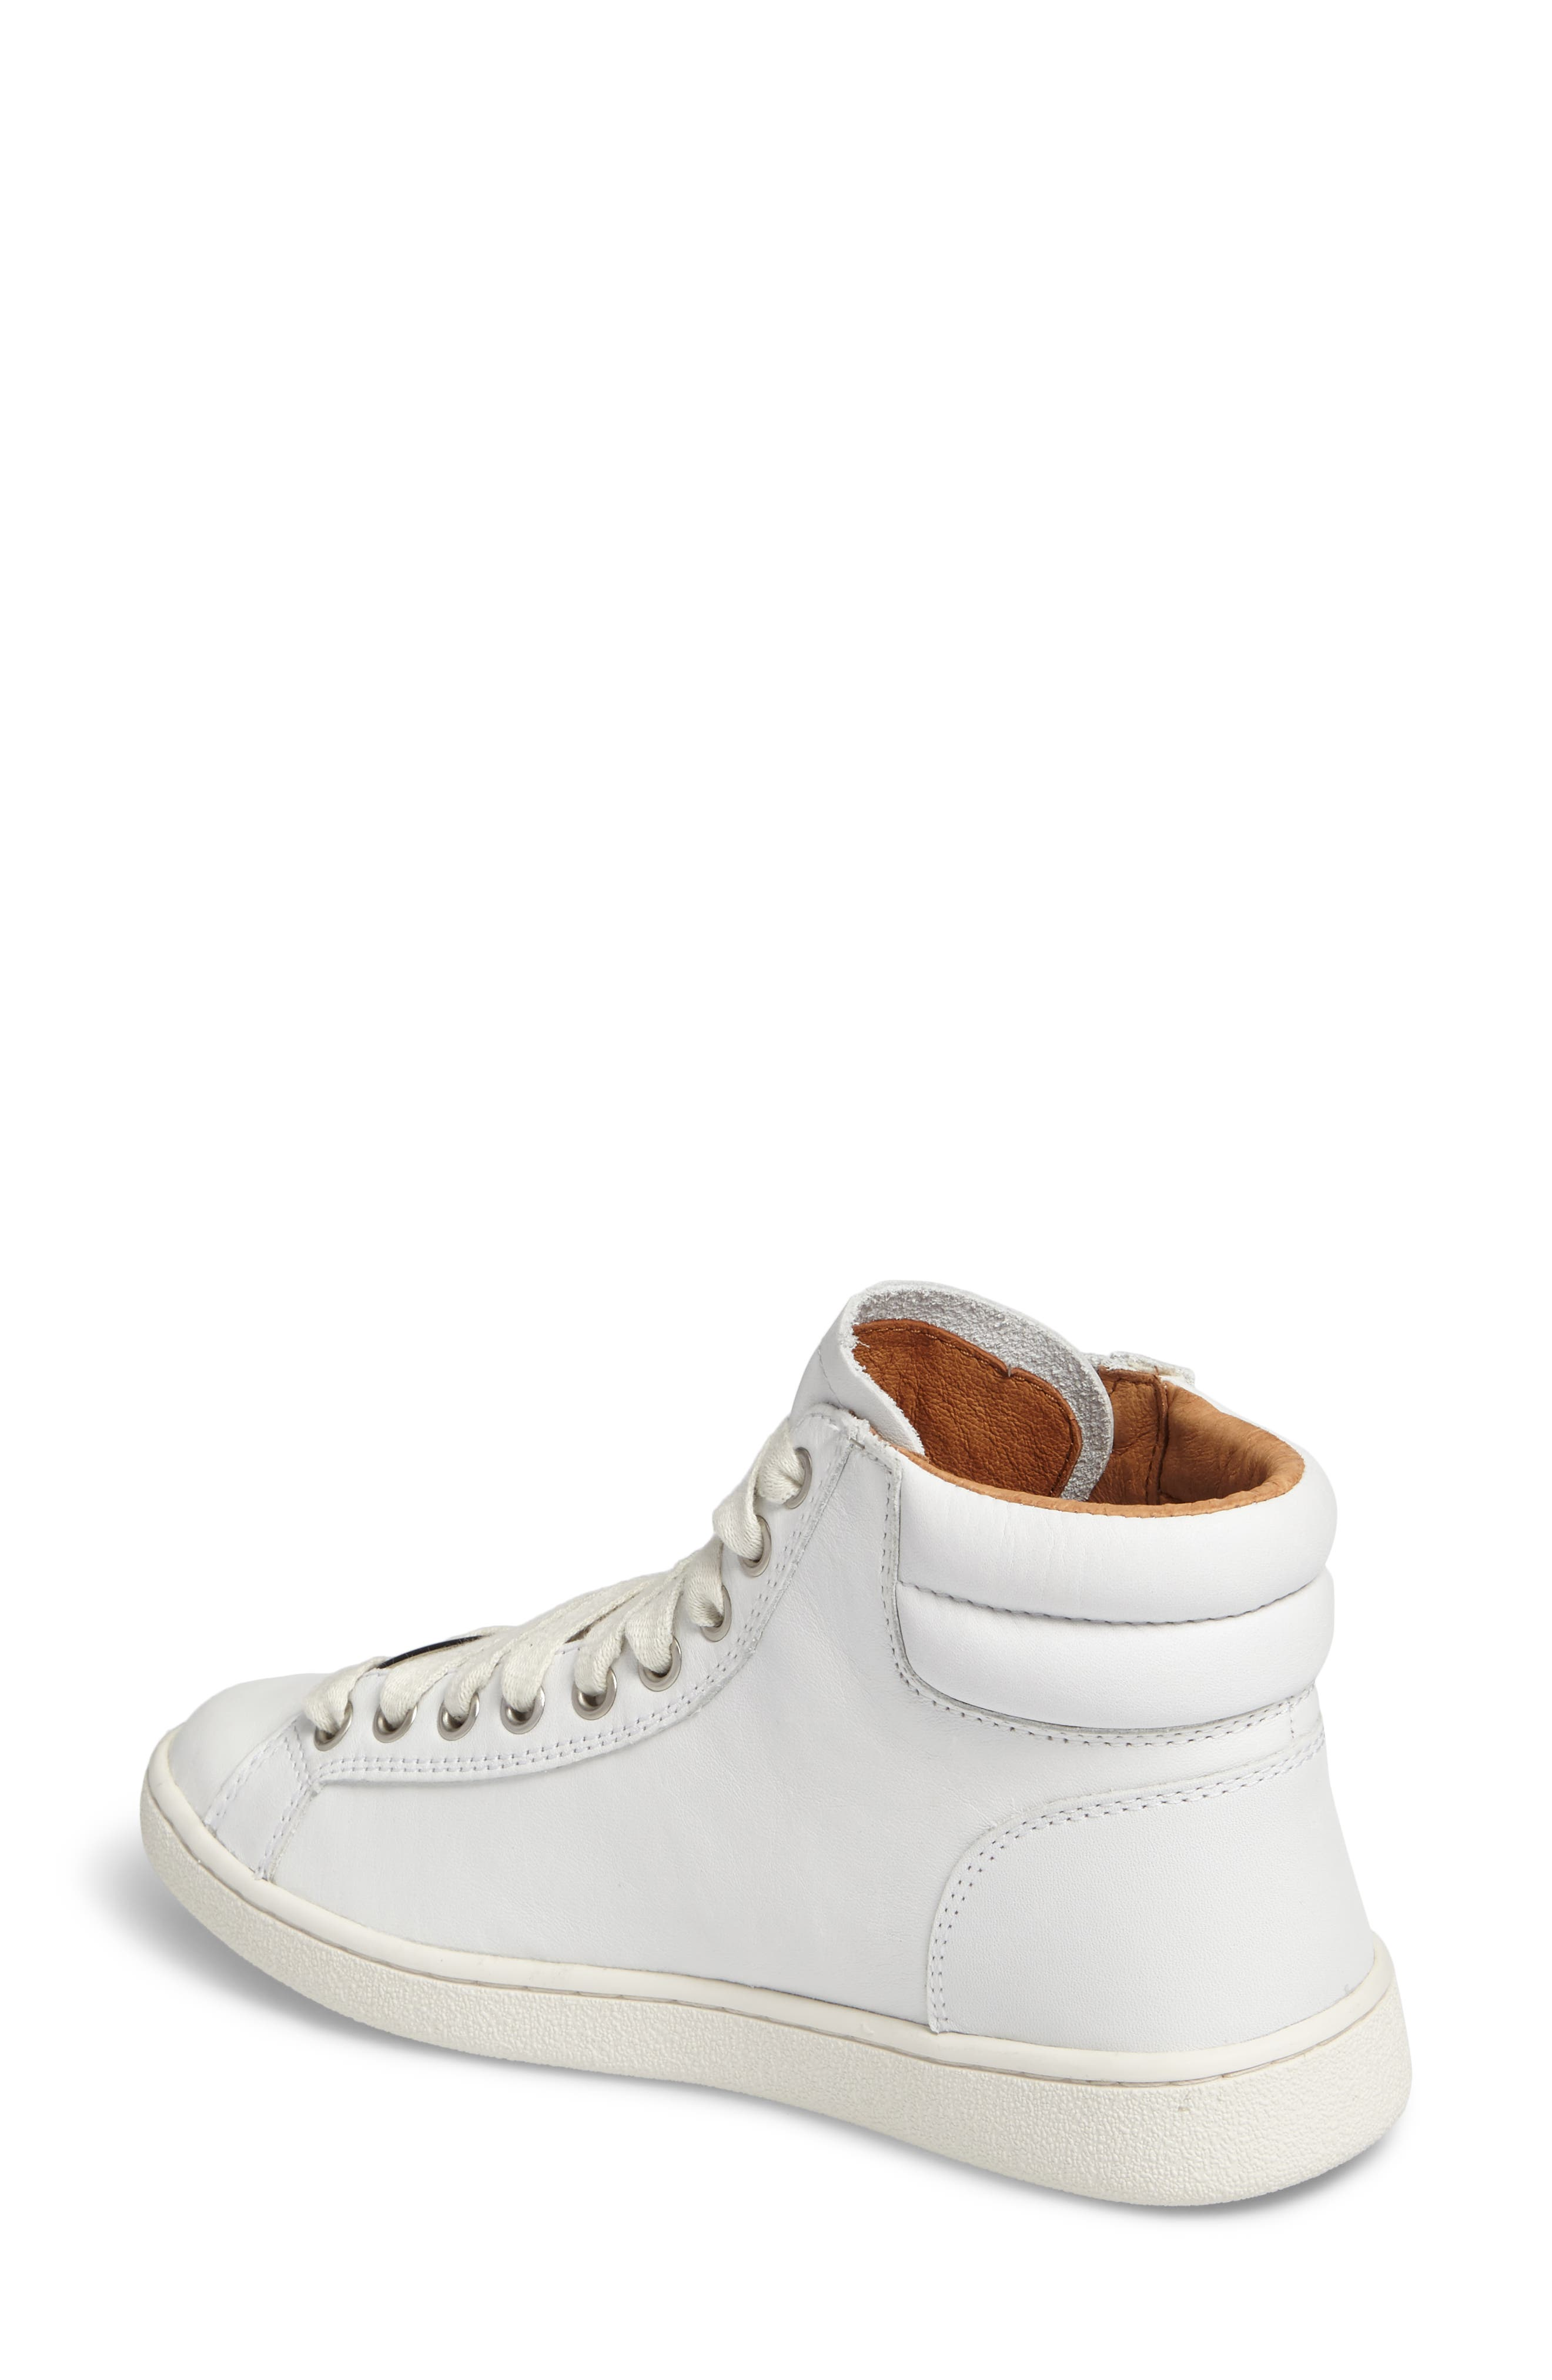 UGG Olive High Top Sneaker,                             Alternate thumbnail 2, color,                             White Leather